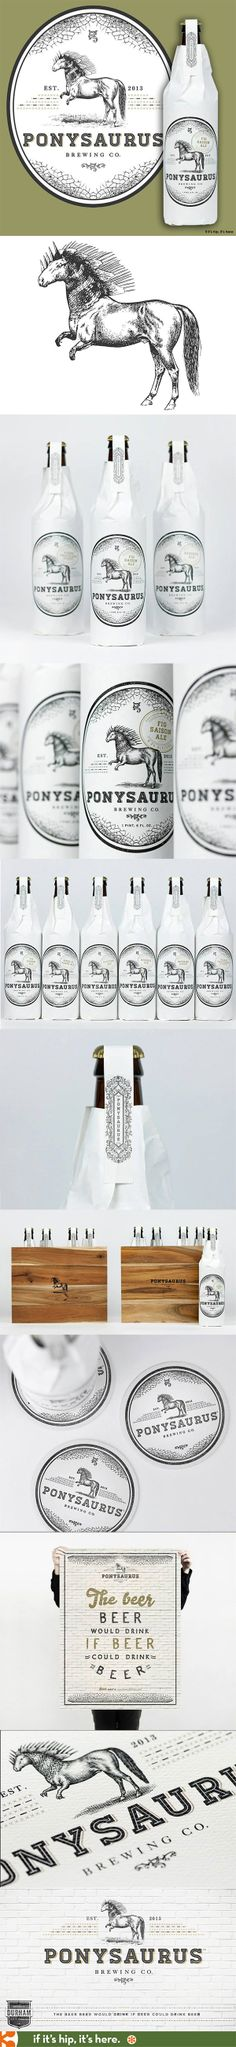 Here you go João Fernandes Beautiful branding and package design for the new Ponysaurus Brewing Co. PD